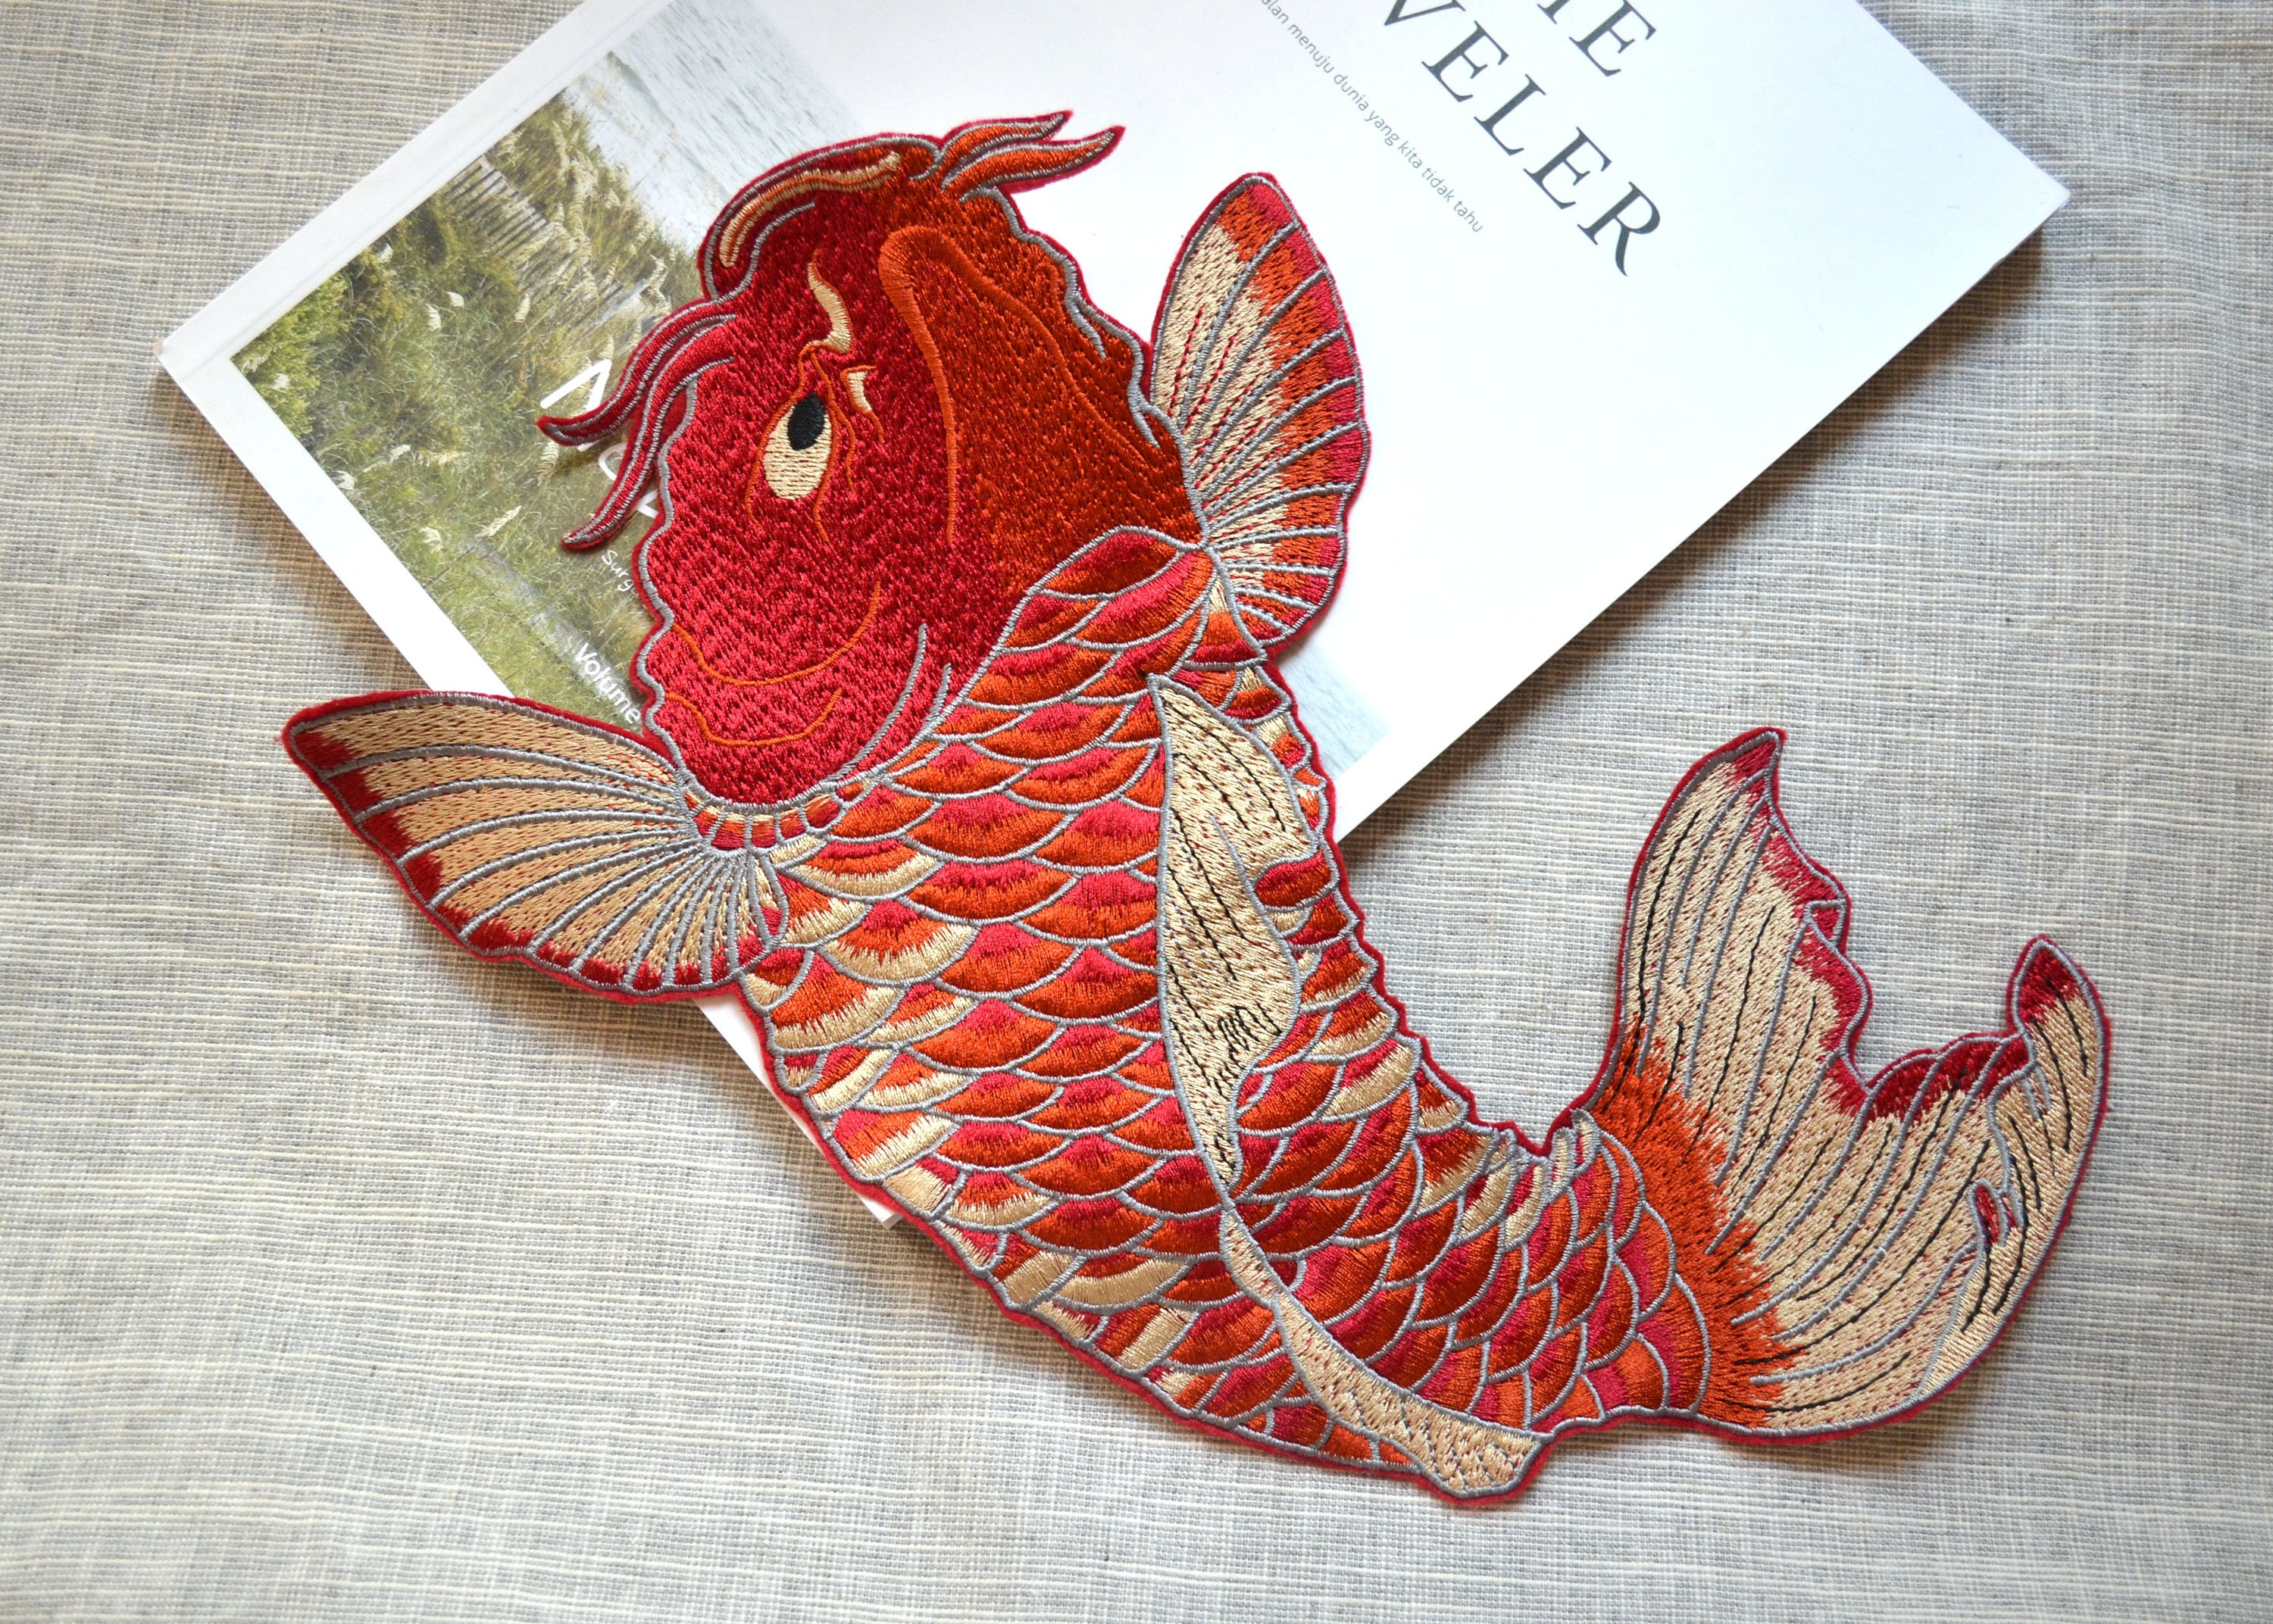 Big red carp embroidery patch large red koi fish sew on for Red koi fish